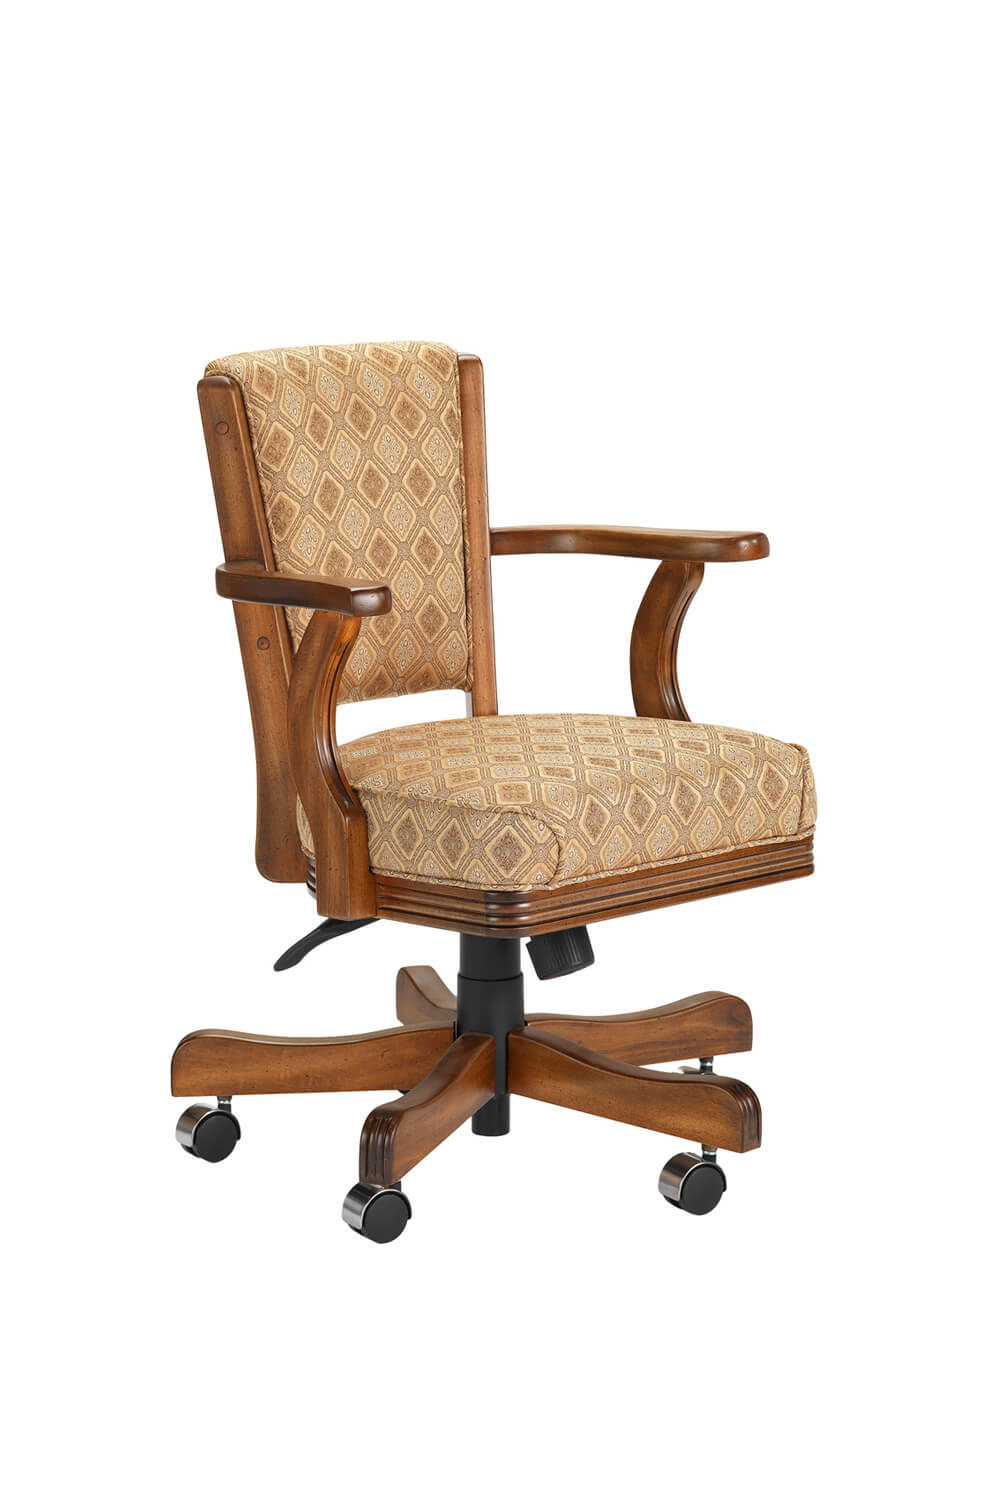 910 Maple Wood Upholstered Arm Game Chair with Casters